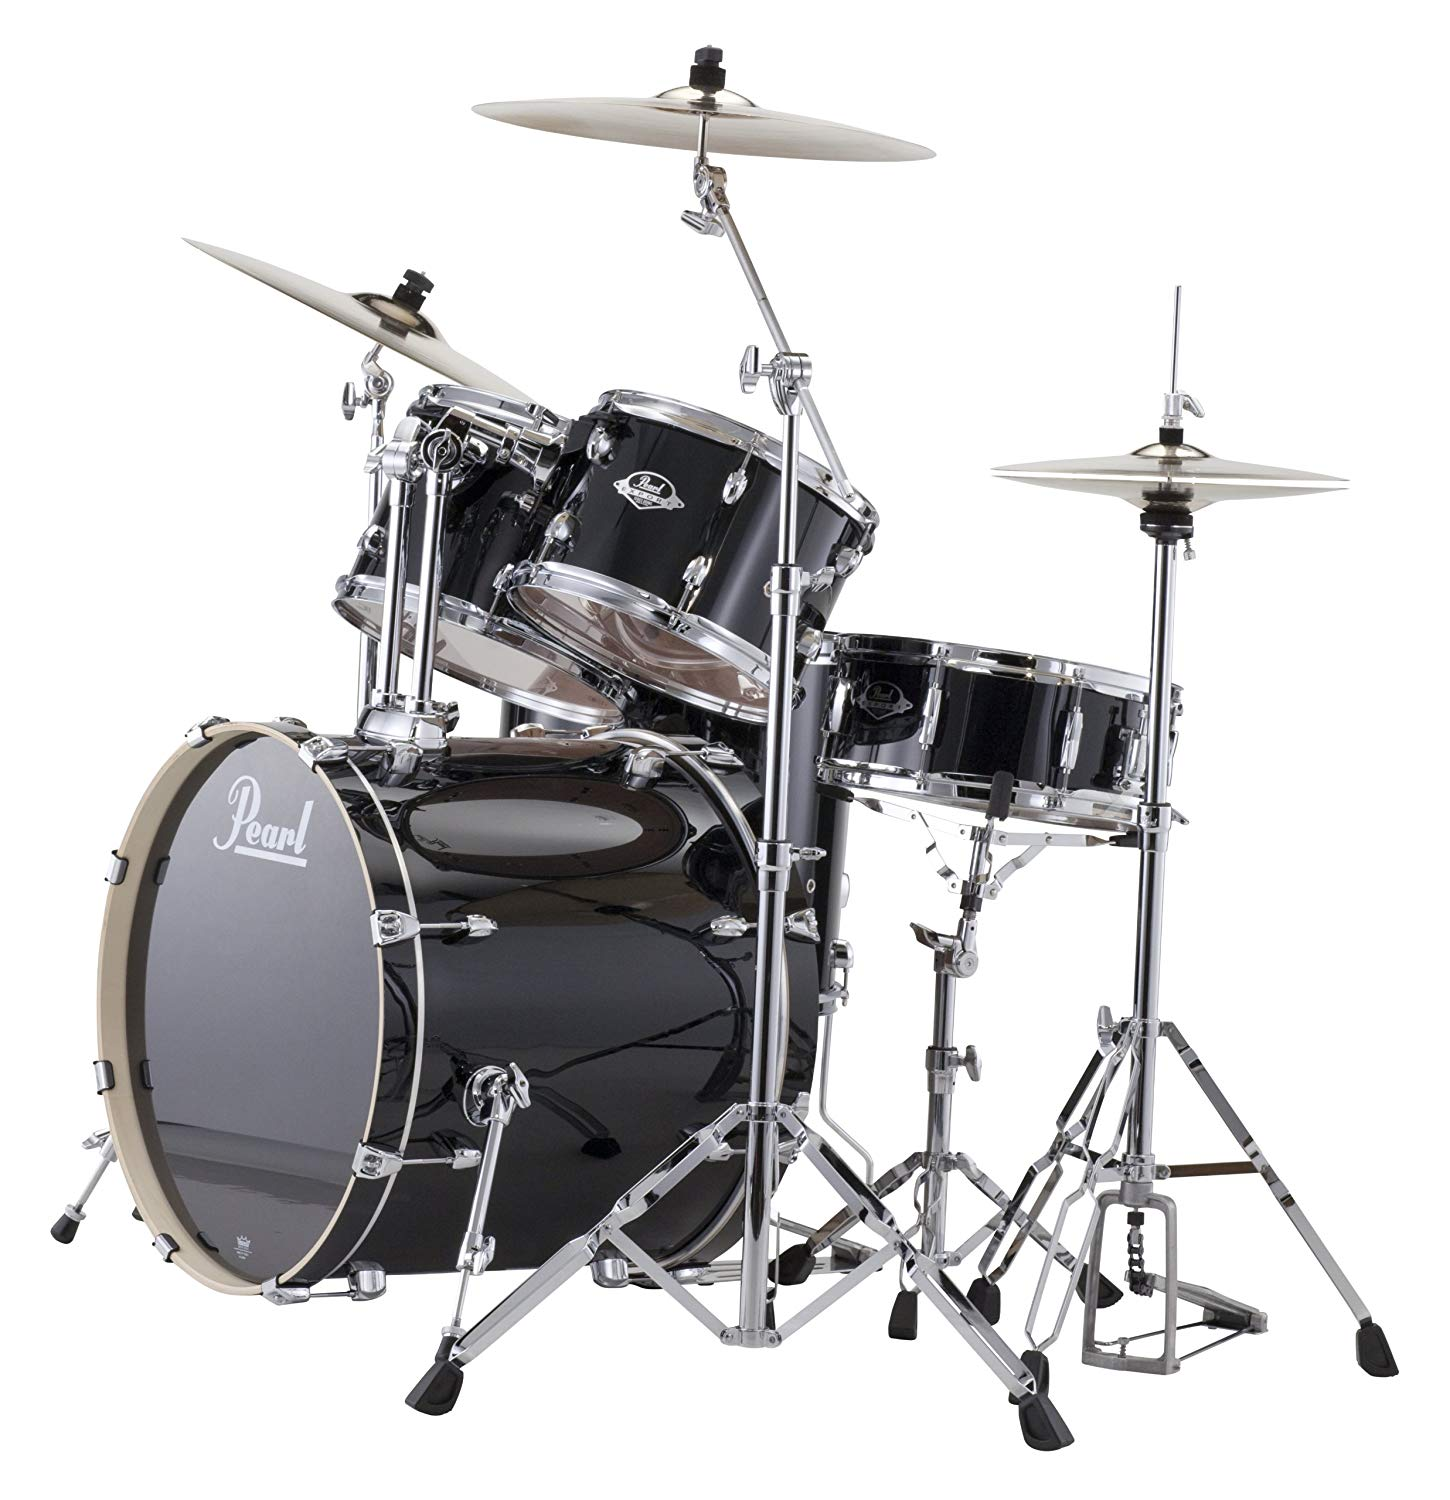 Pearl EXX725/C 5-Piece Export Standard Drum Set with Hardware - Jet Black